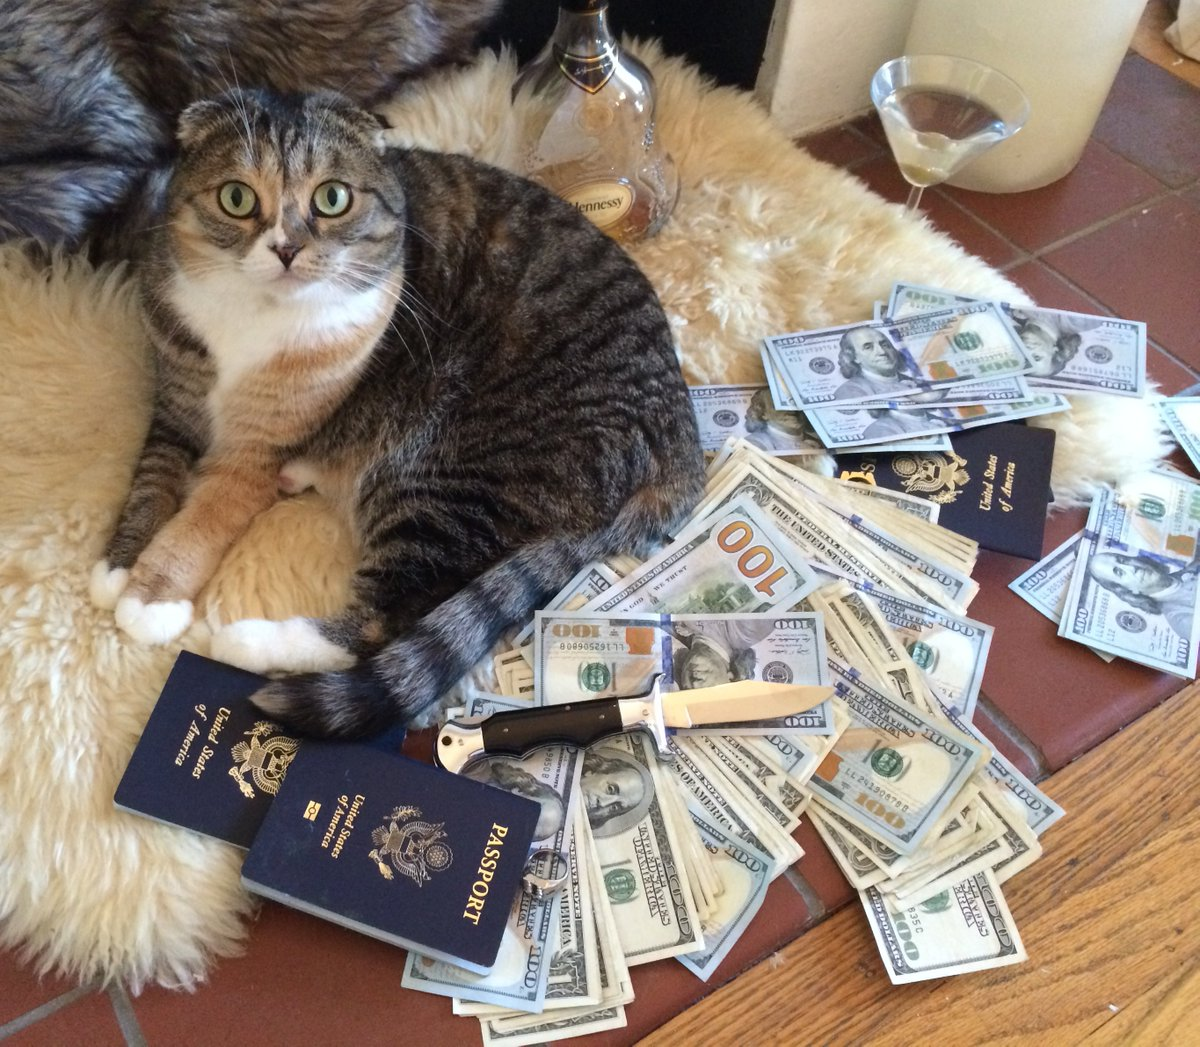 Cats with guns and money